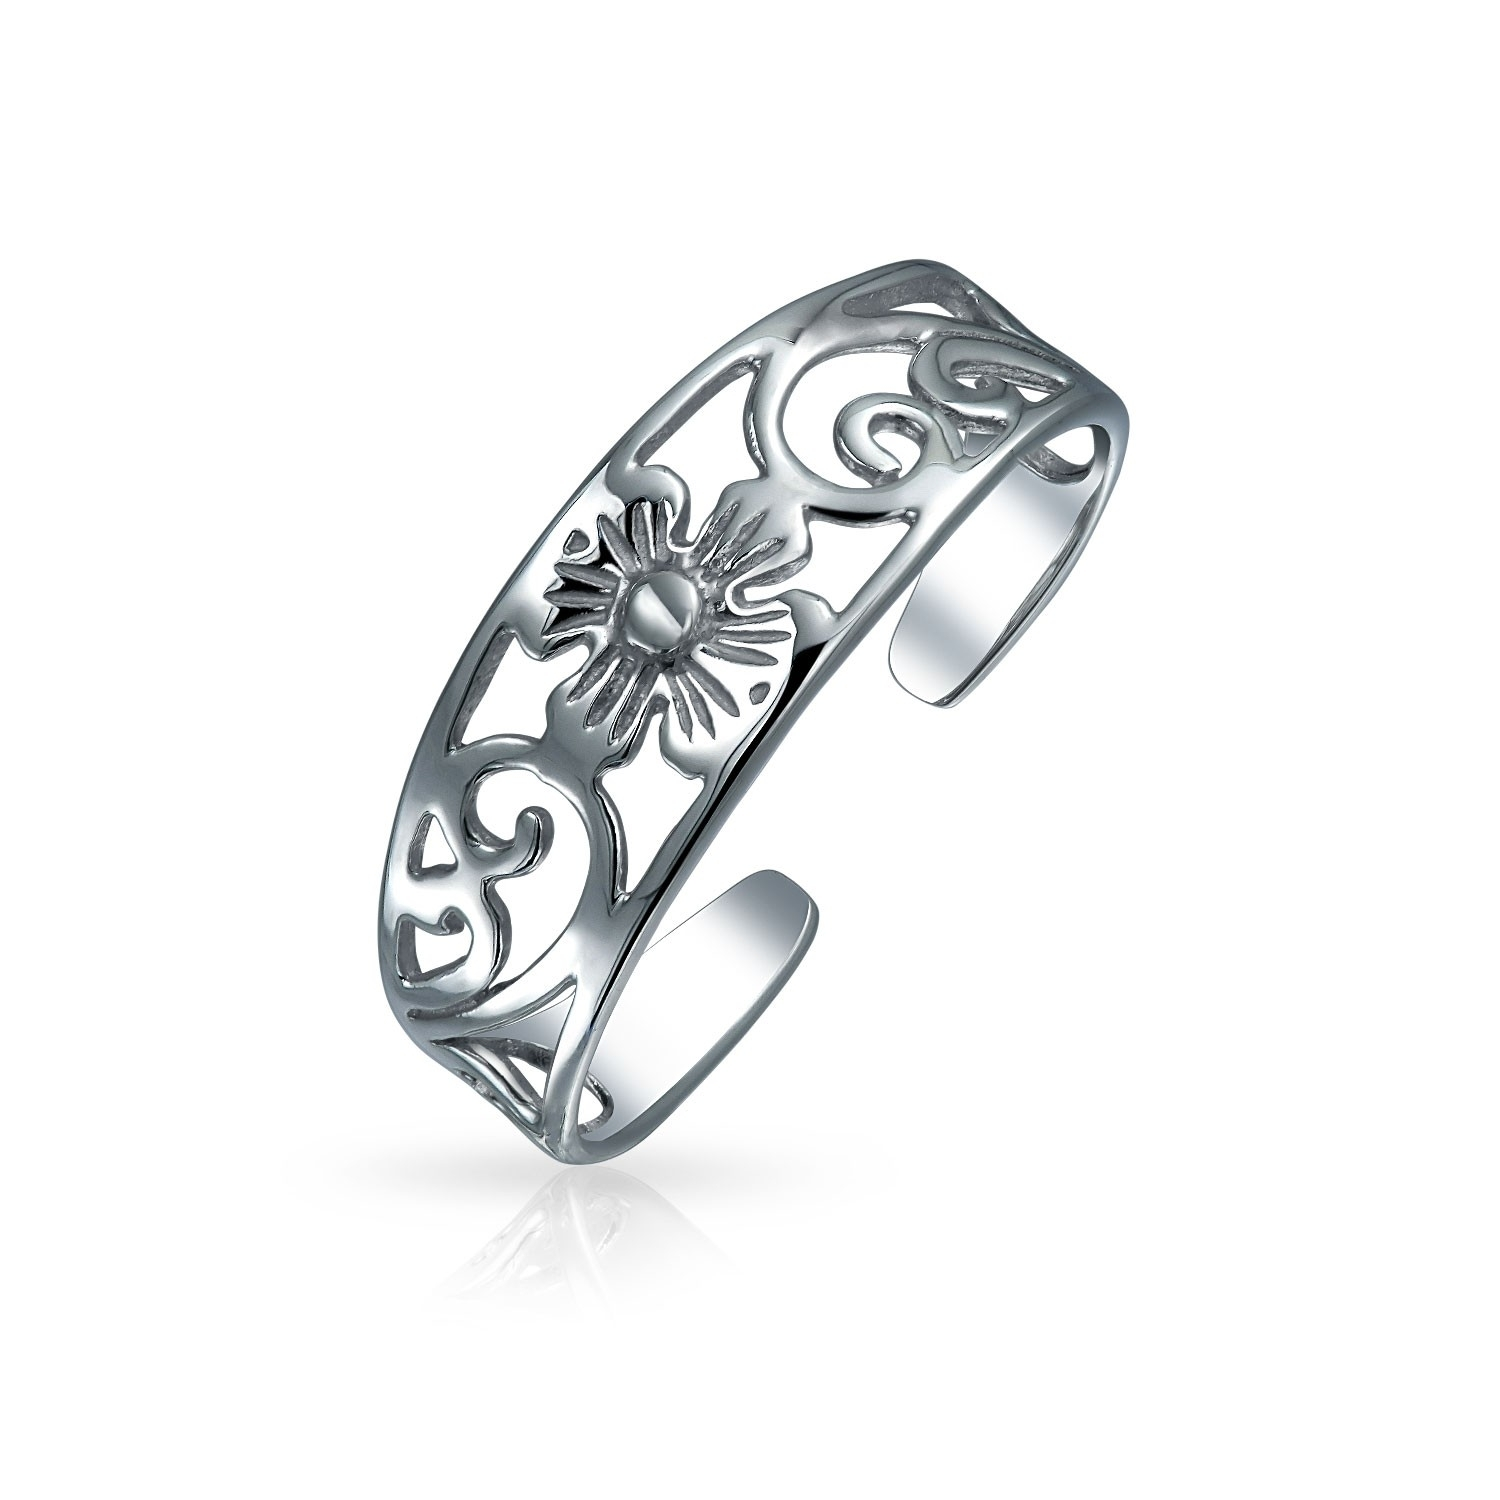 Adjustable Filigree Flower Toe Ring 925 Sterling Silver Midi Rings Pertaining To Recent Diamond Toe Rings (Gallery 3 of 15)